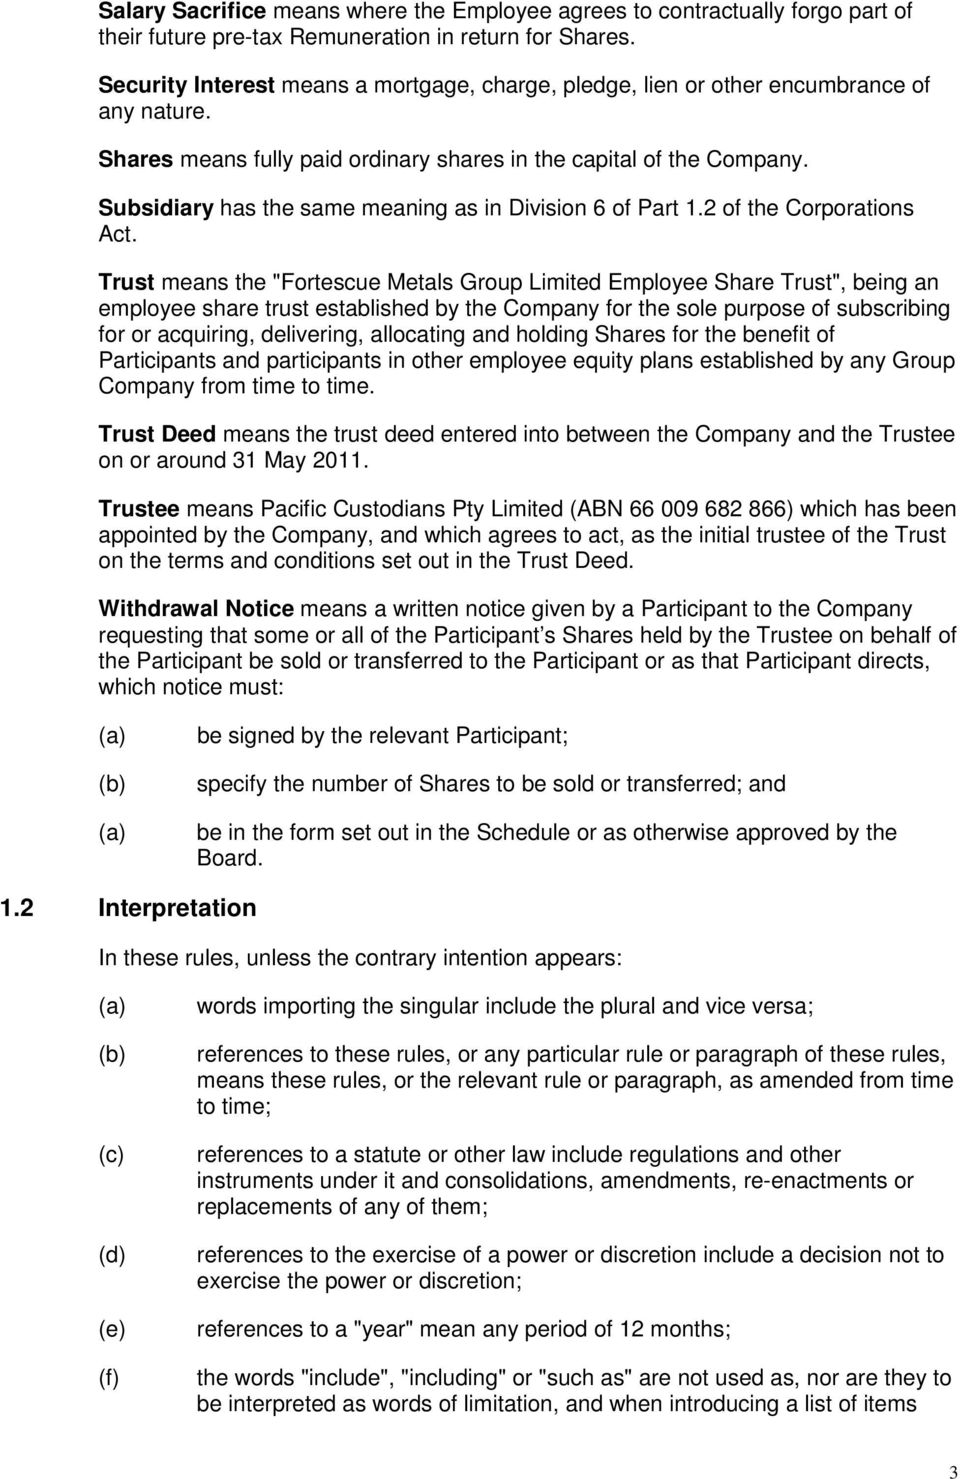 Subsidiary has the same meaning as in Division 6 of Part 1.2 of the Corporations Act.